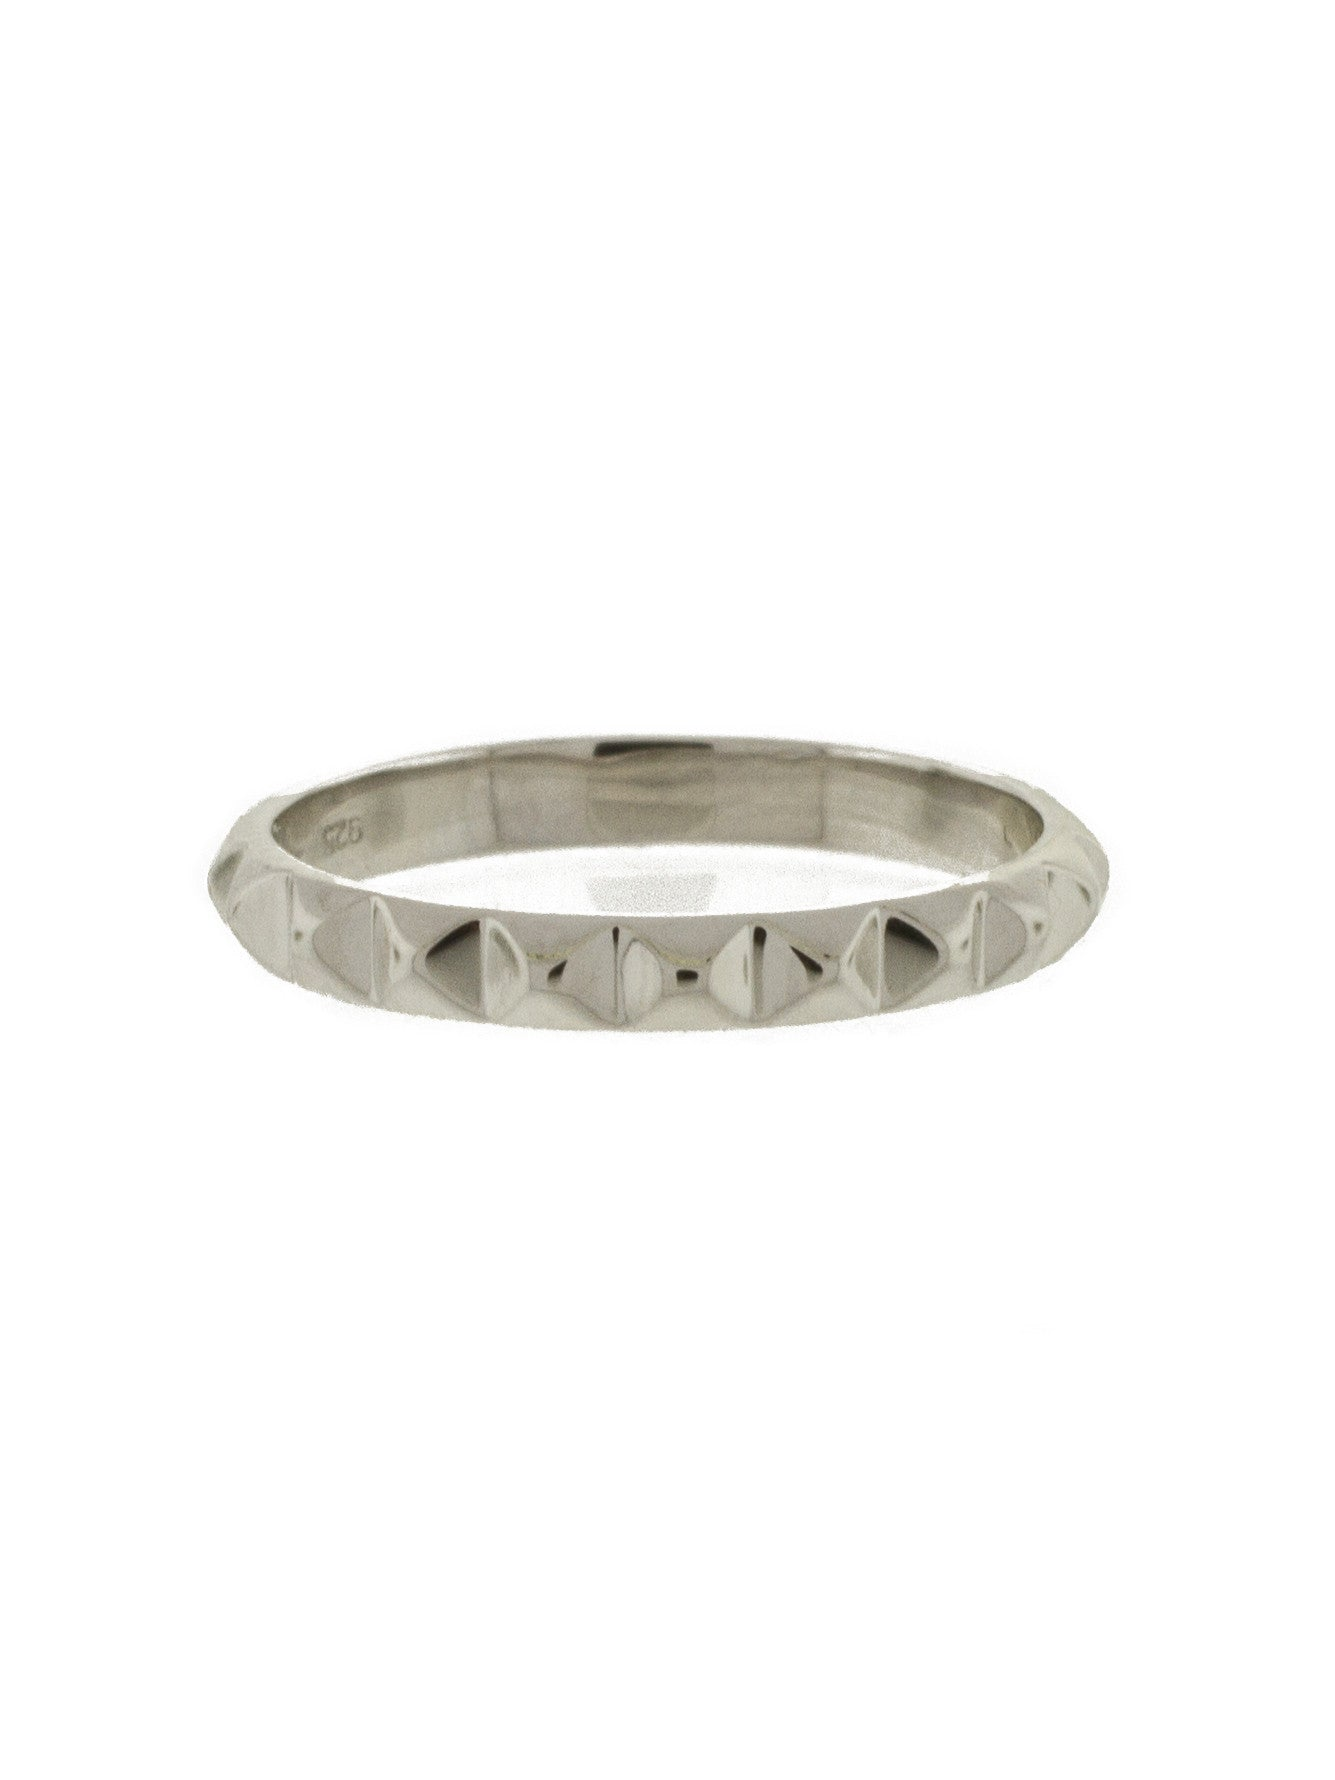 pyramid ring Sterling silver Silver studded ring Stacking ring textured ring stud ring